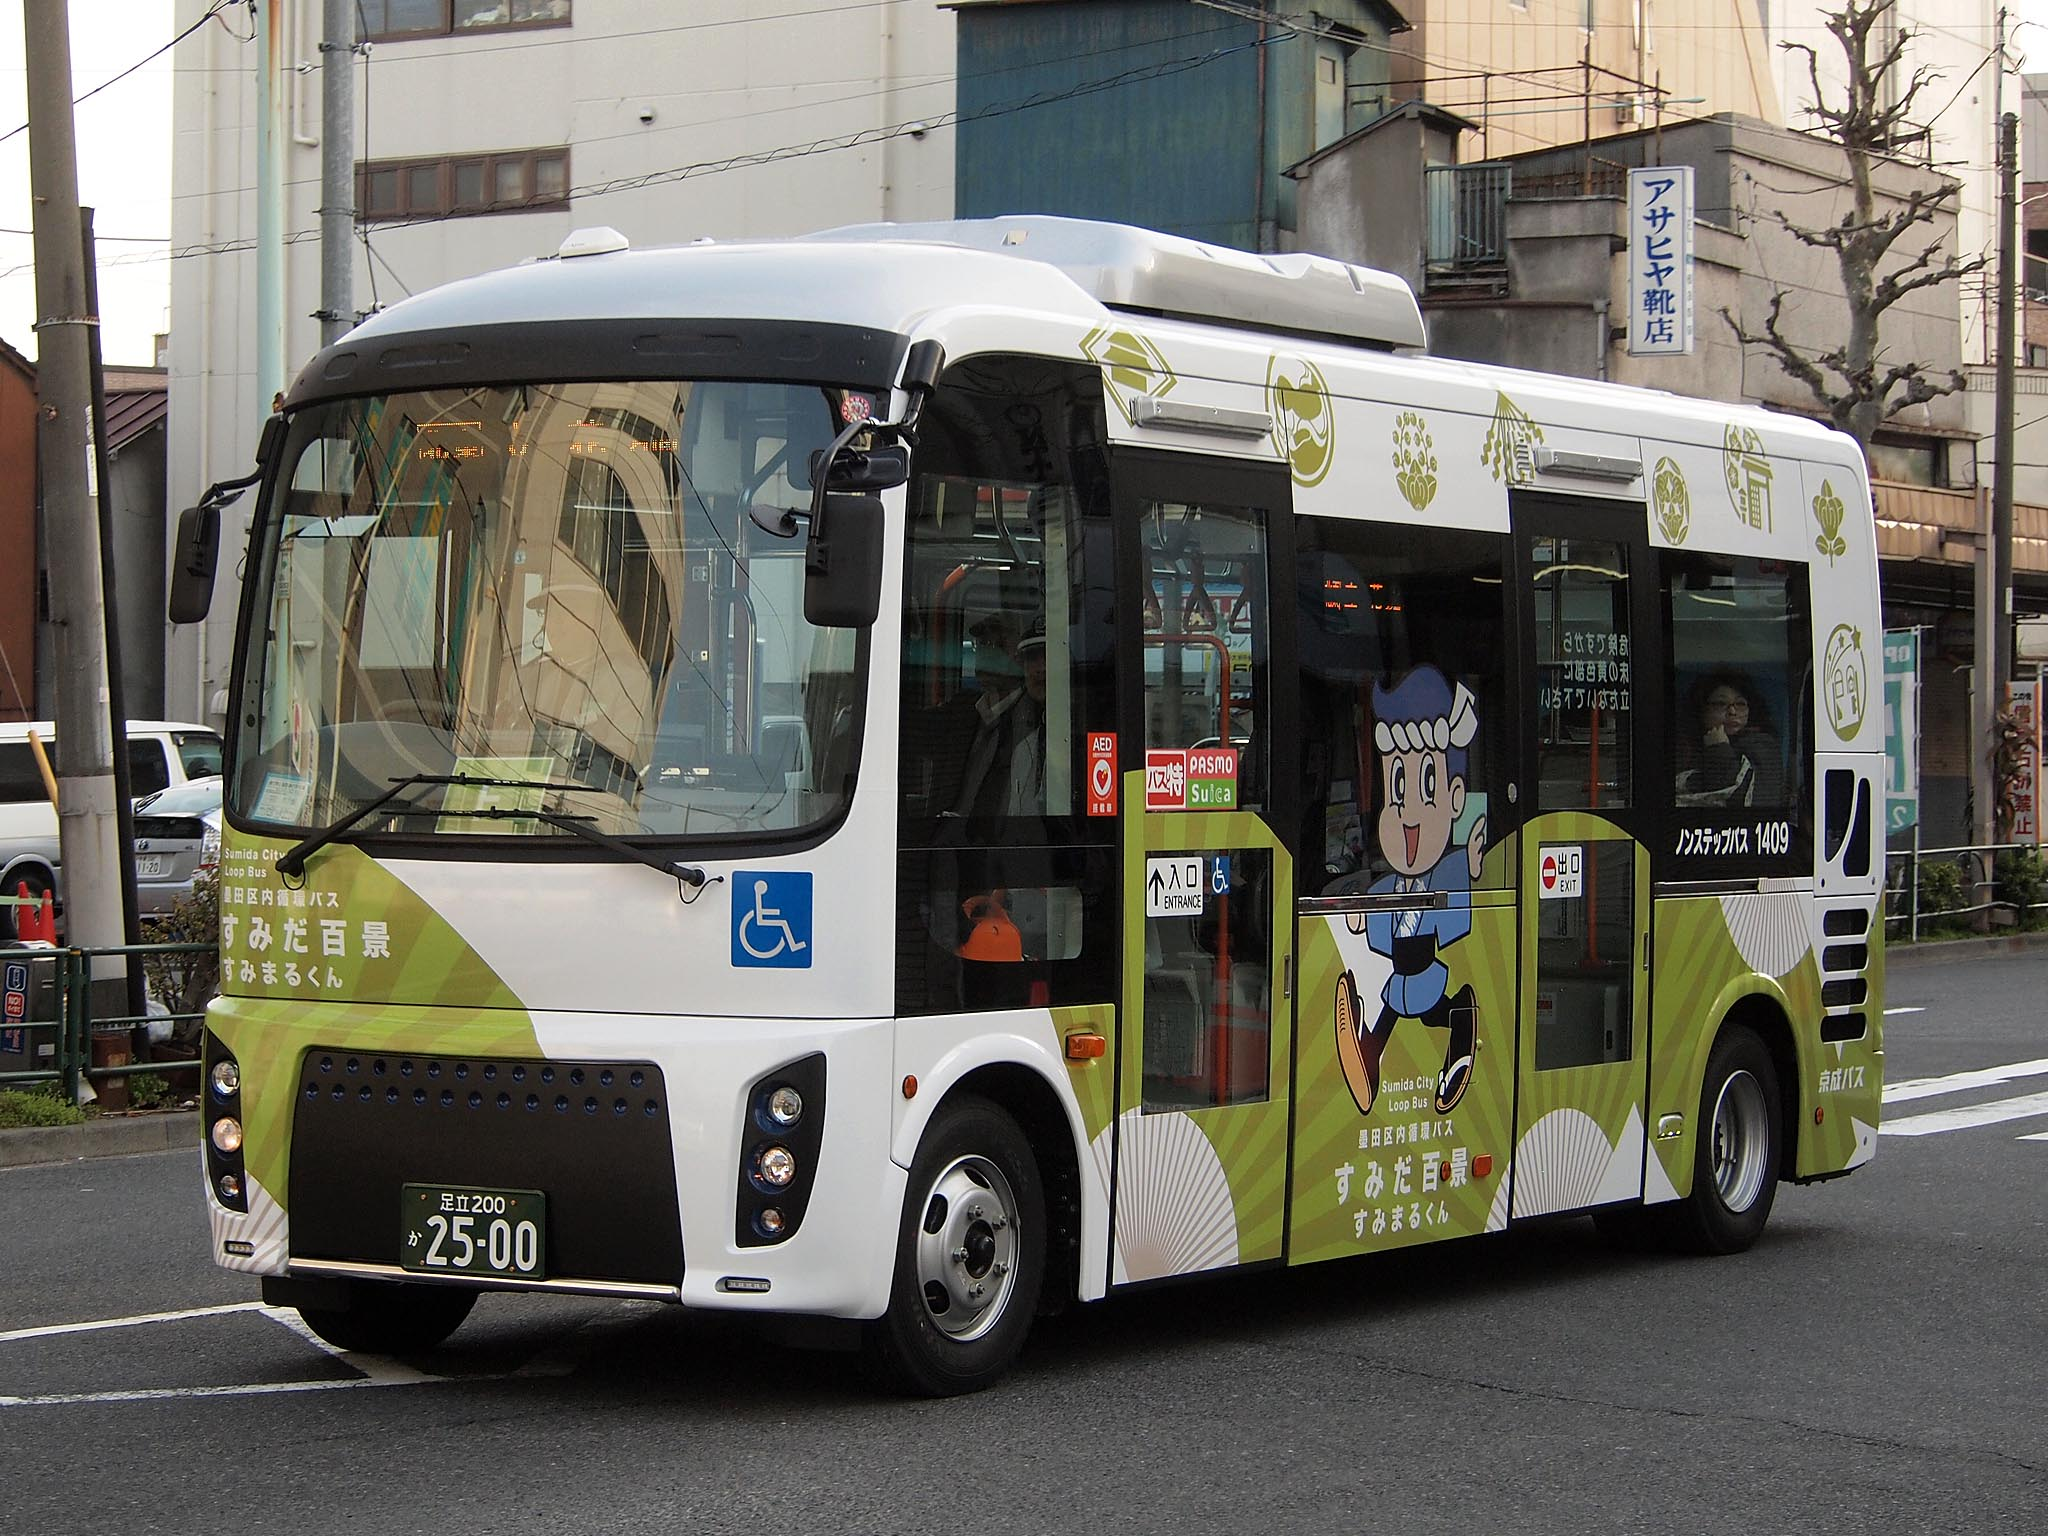 https://upload.wikimedia.org/wikipedia/commons/6/65/Keisei_Bus_1409_Sumida_City_Loop_Bus_Sumimaru-Kun_Wakakusa.jpg